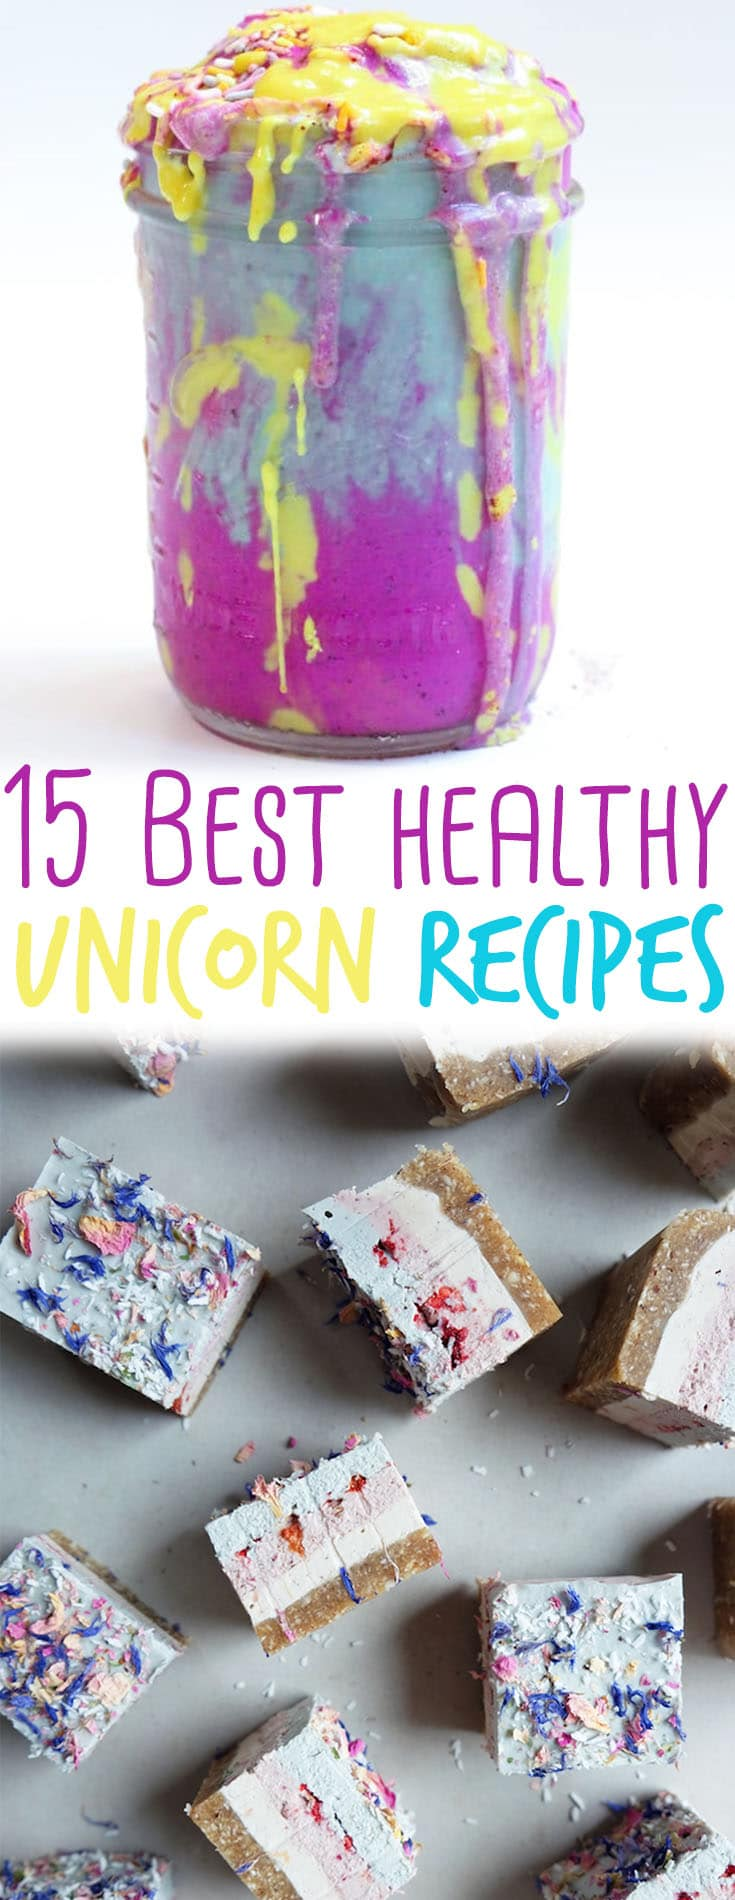 I'm keeping the unicorn trend alive by sharing 15 of the best healthy unicorn recipes.